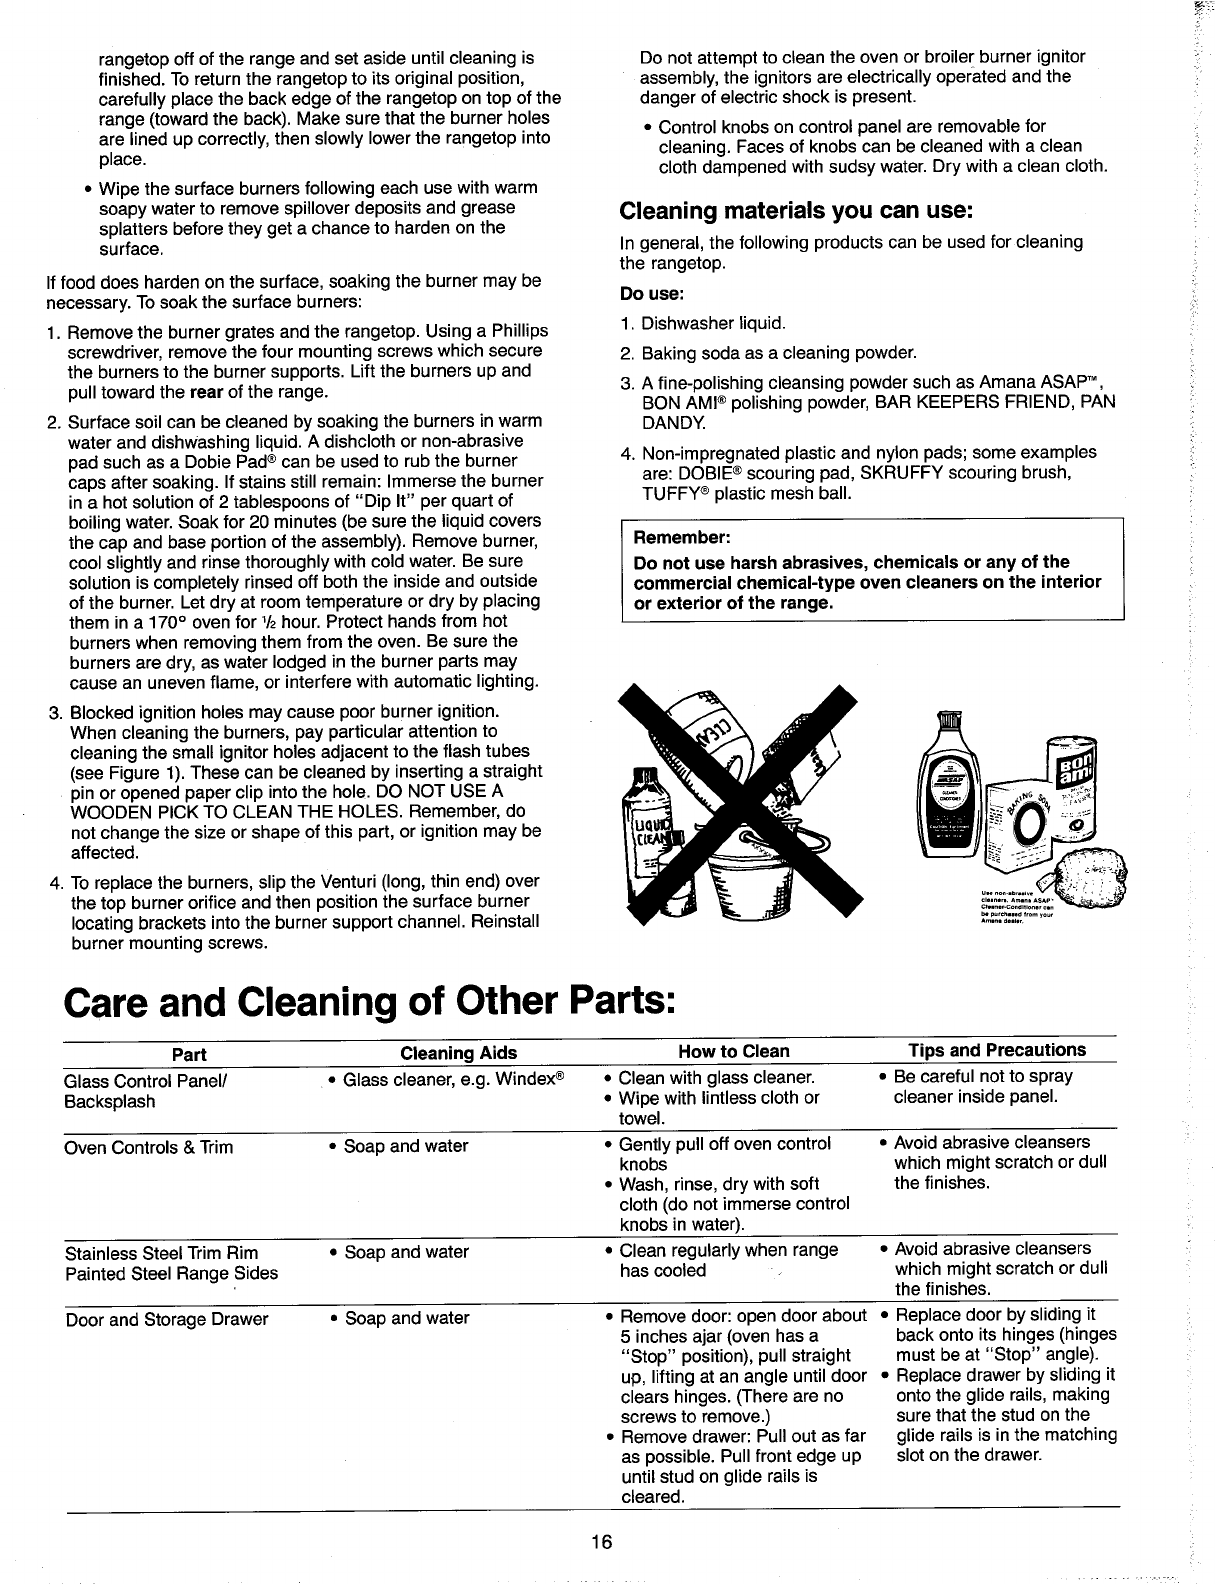 Door Handle And Door Shelves Diagram And Parts List For Amana